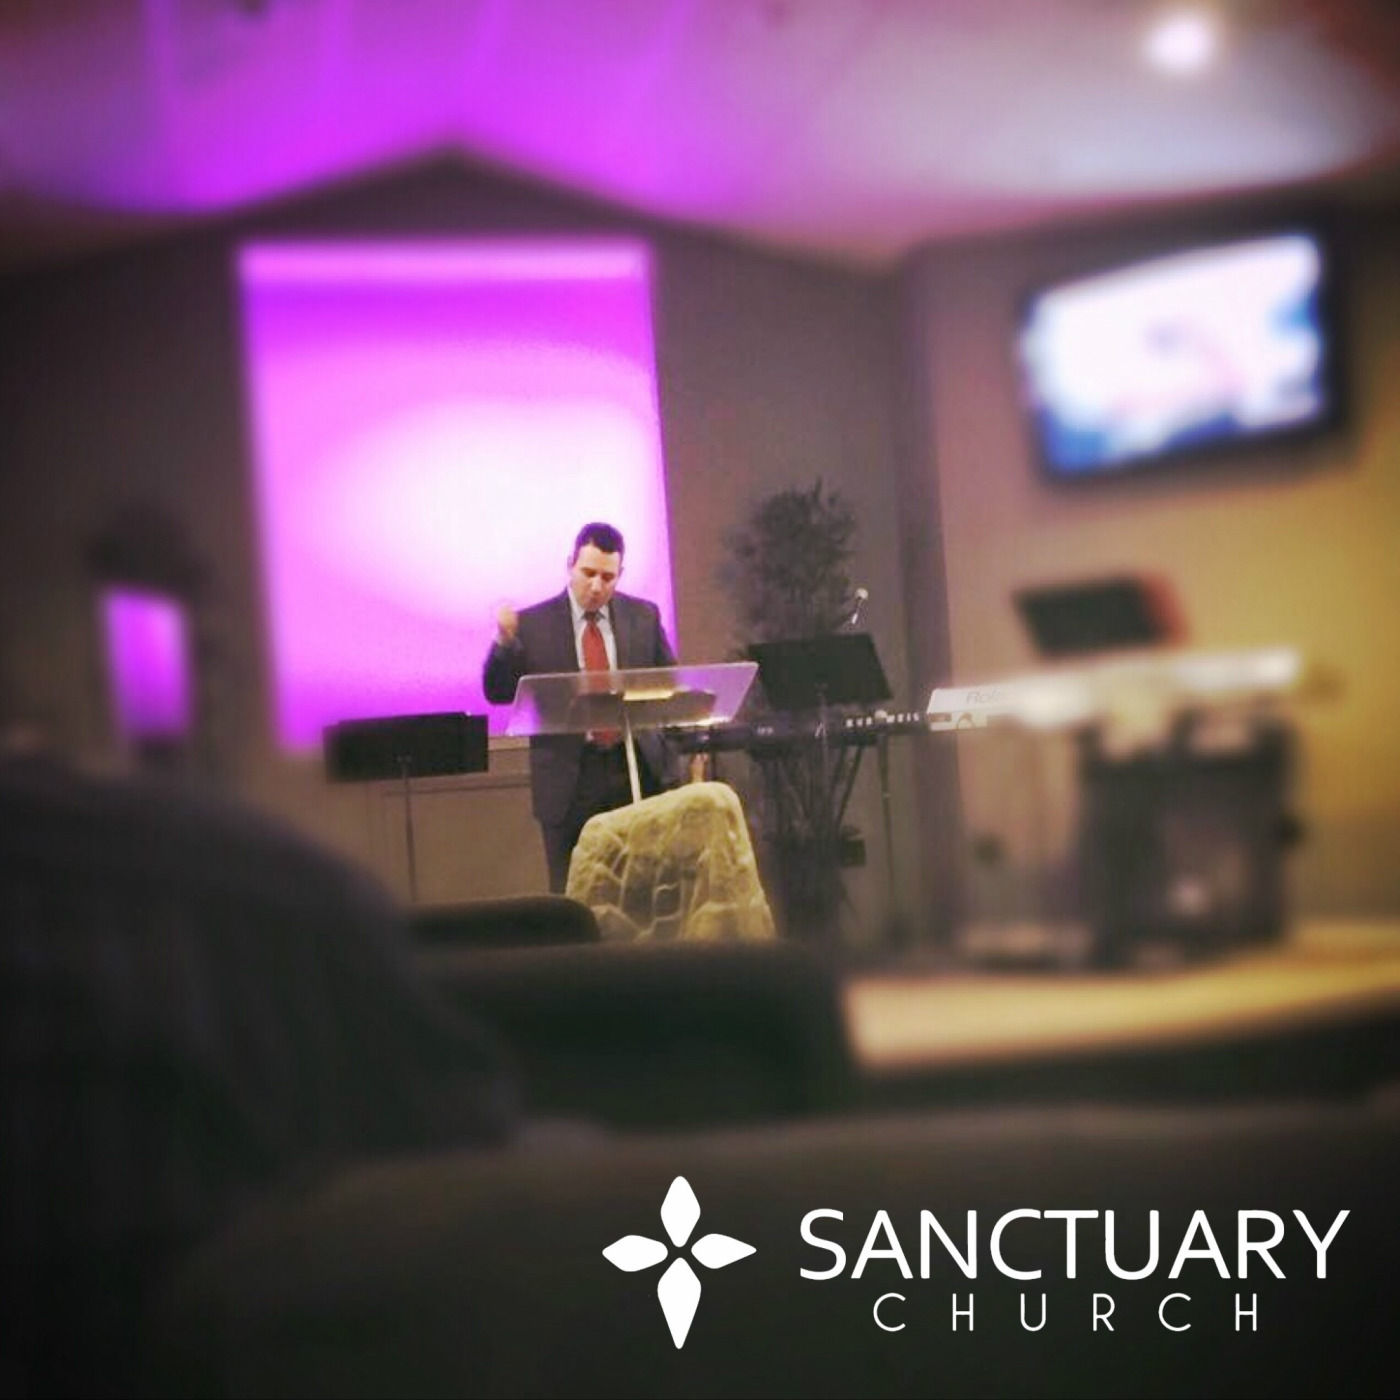 Sanctuary Church of Jonesboro